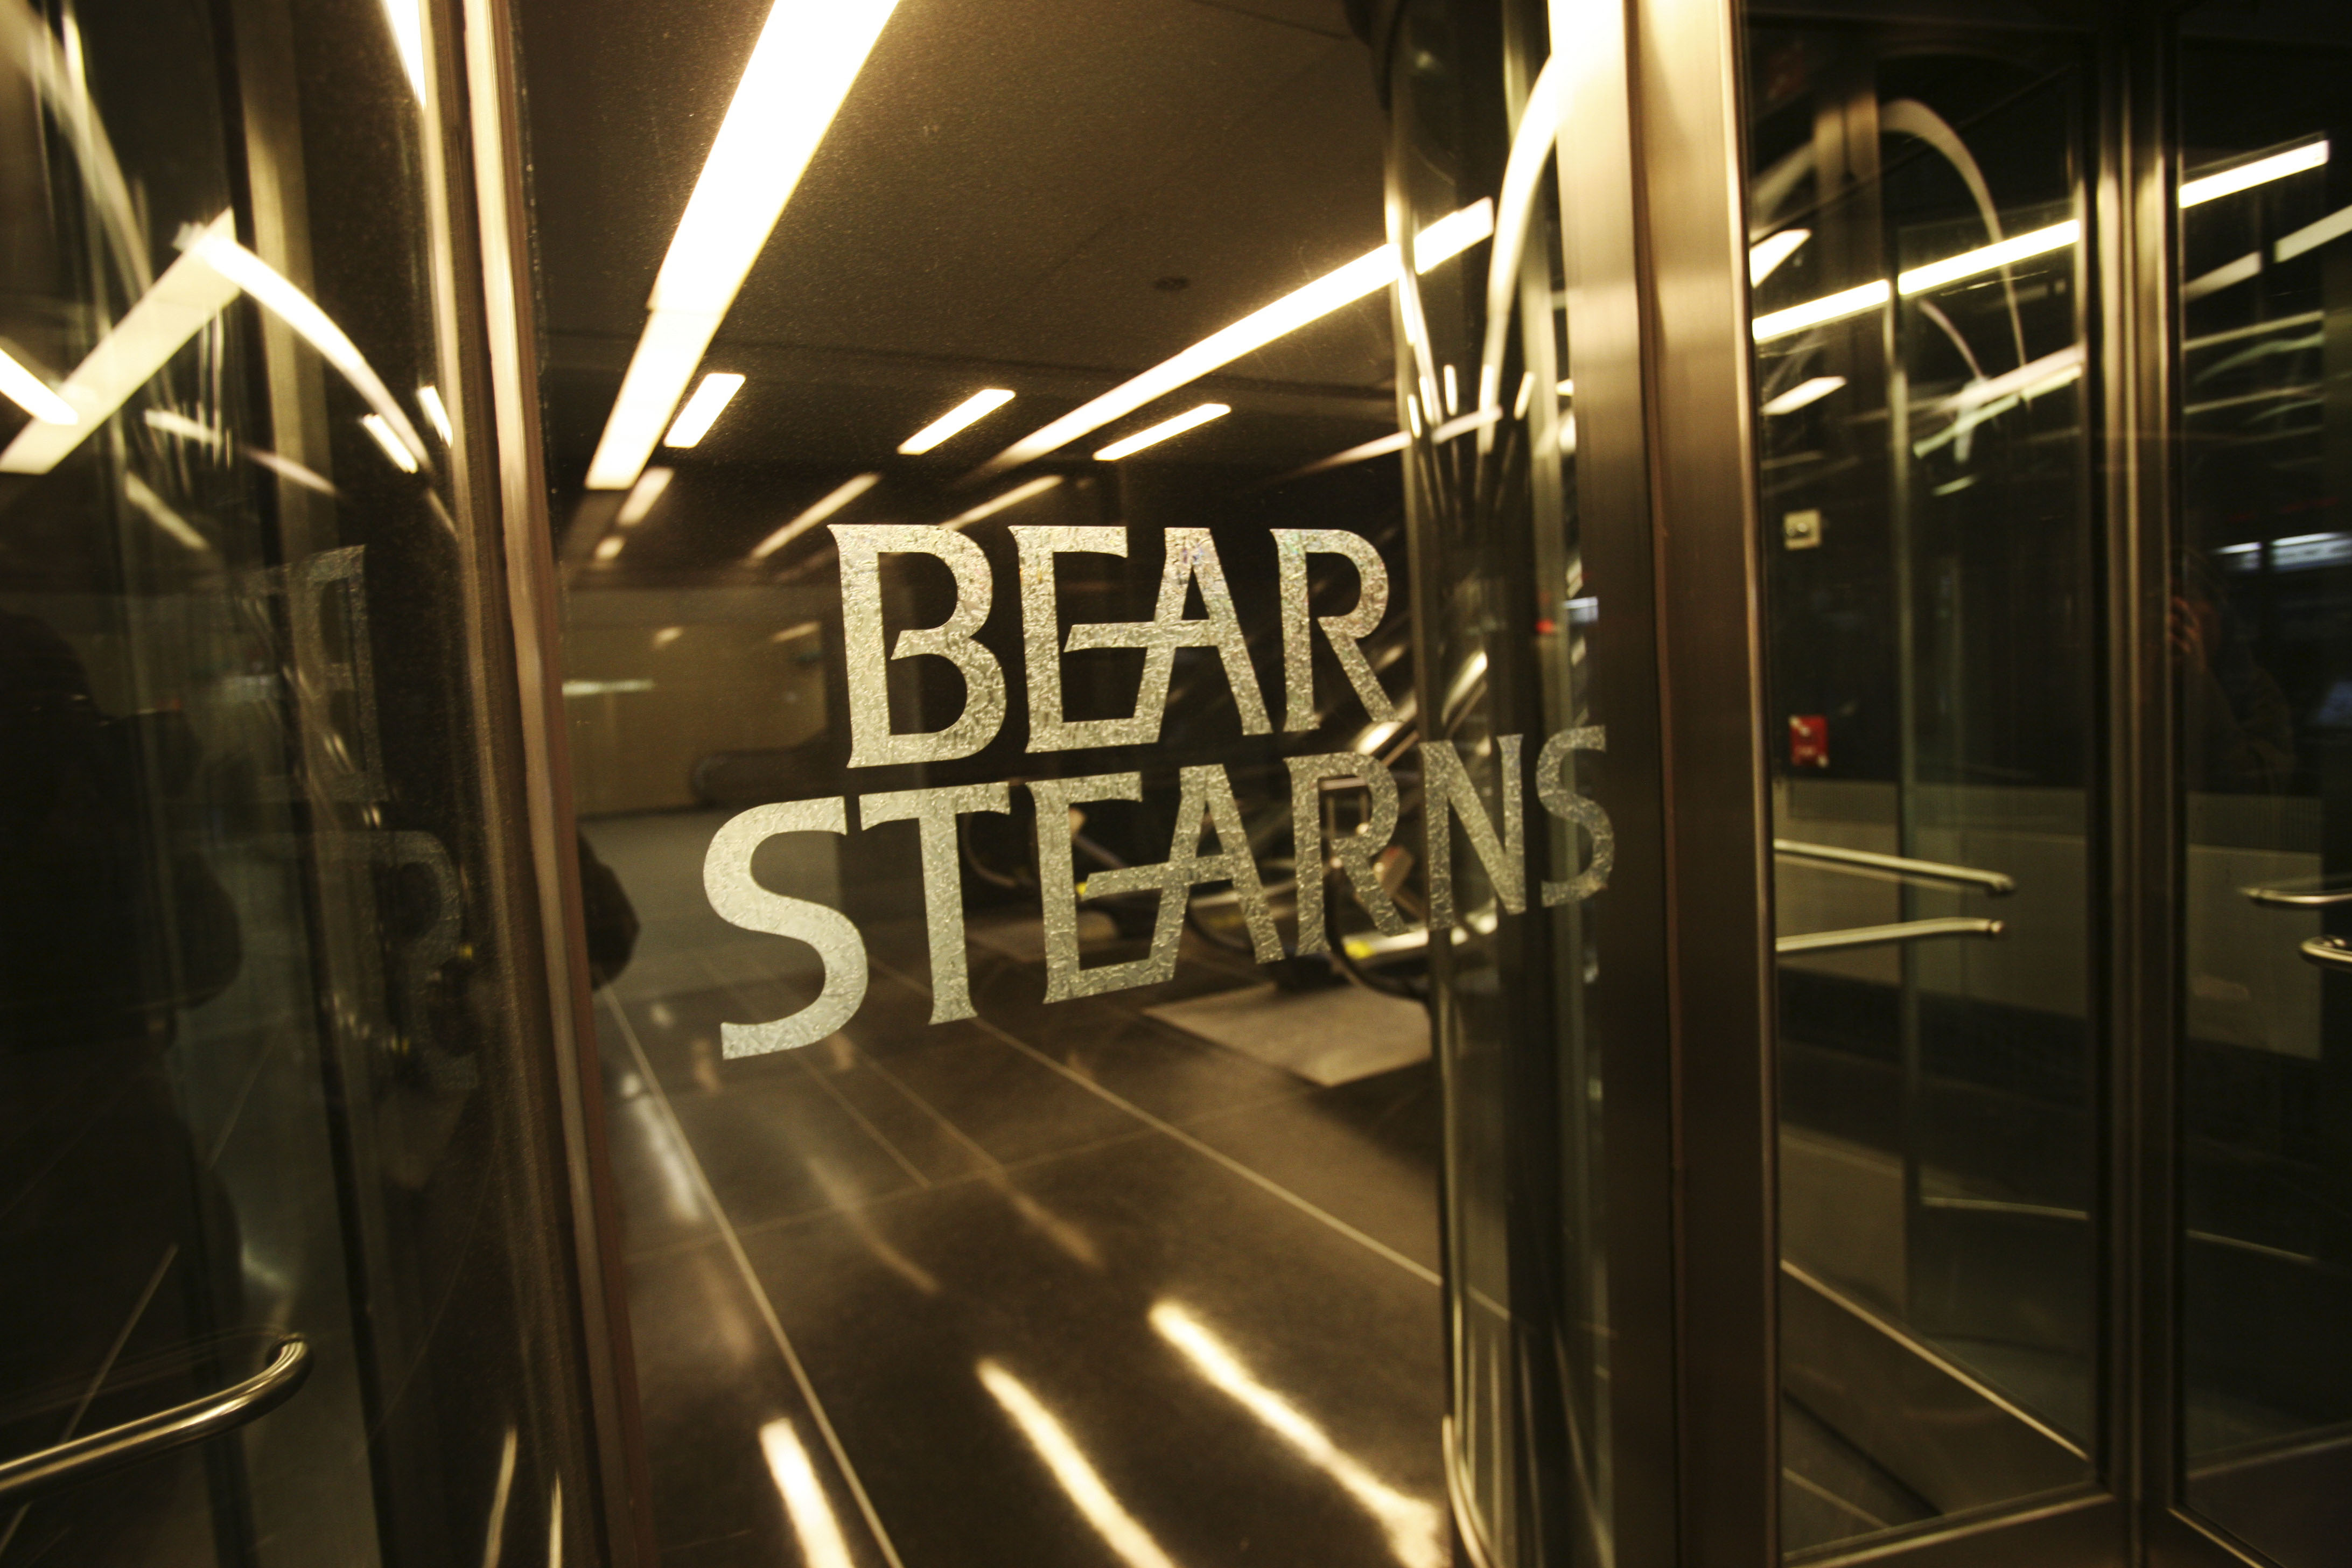 Bear Stearns was acquired by JP Morgan in March 2008.